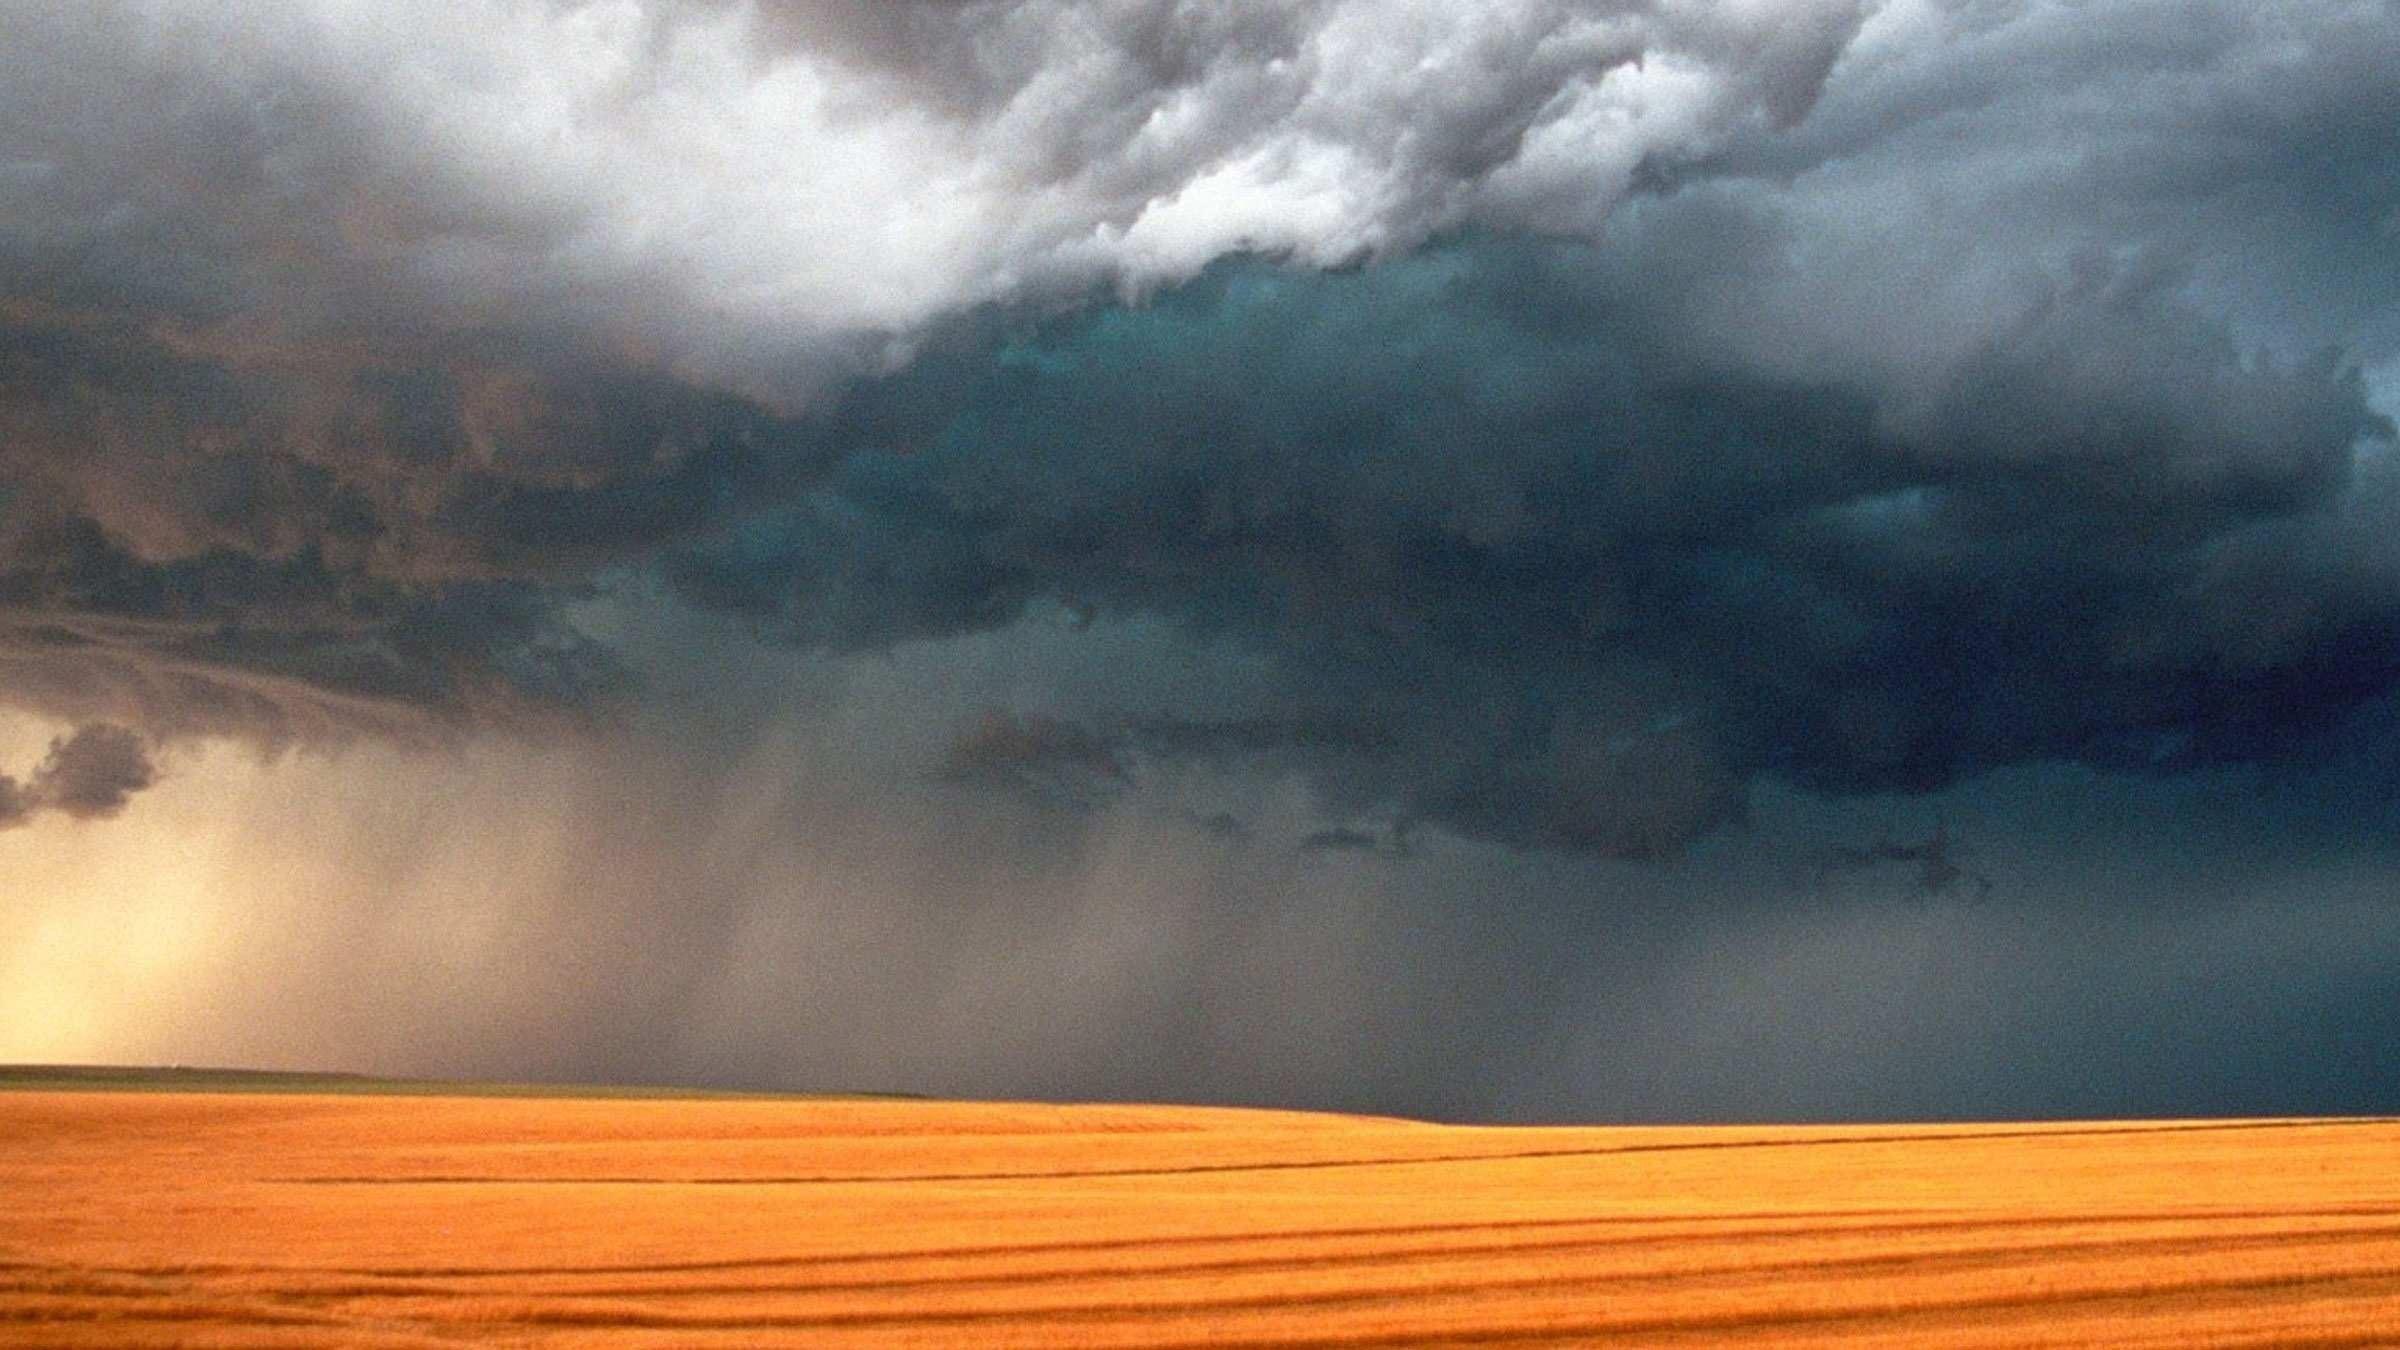 How to Use Life's Storms to Let Go and Live in Peace